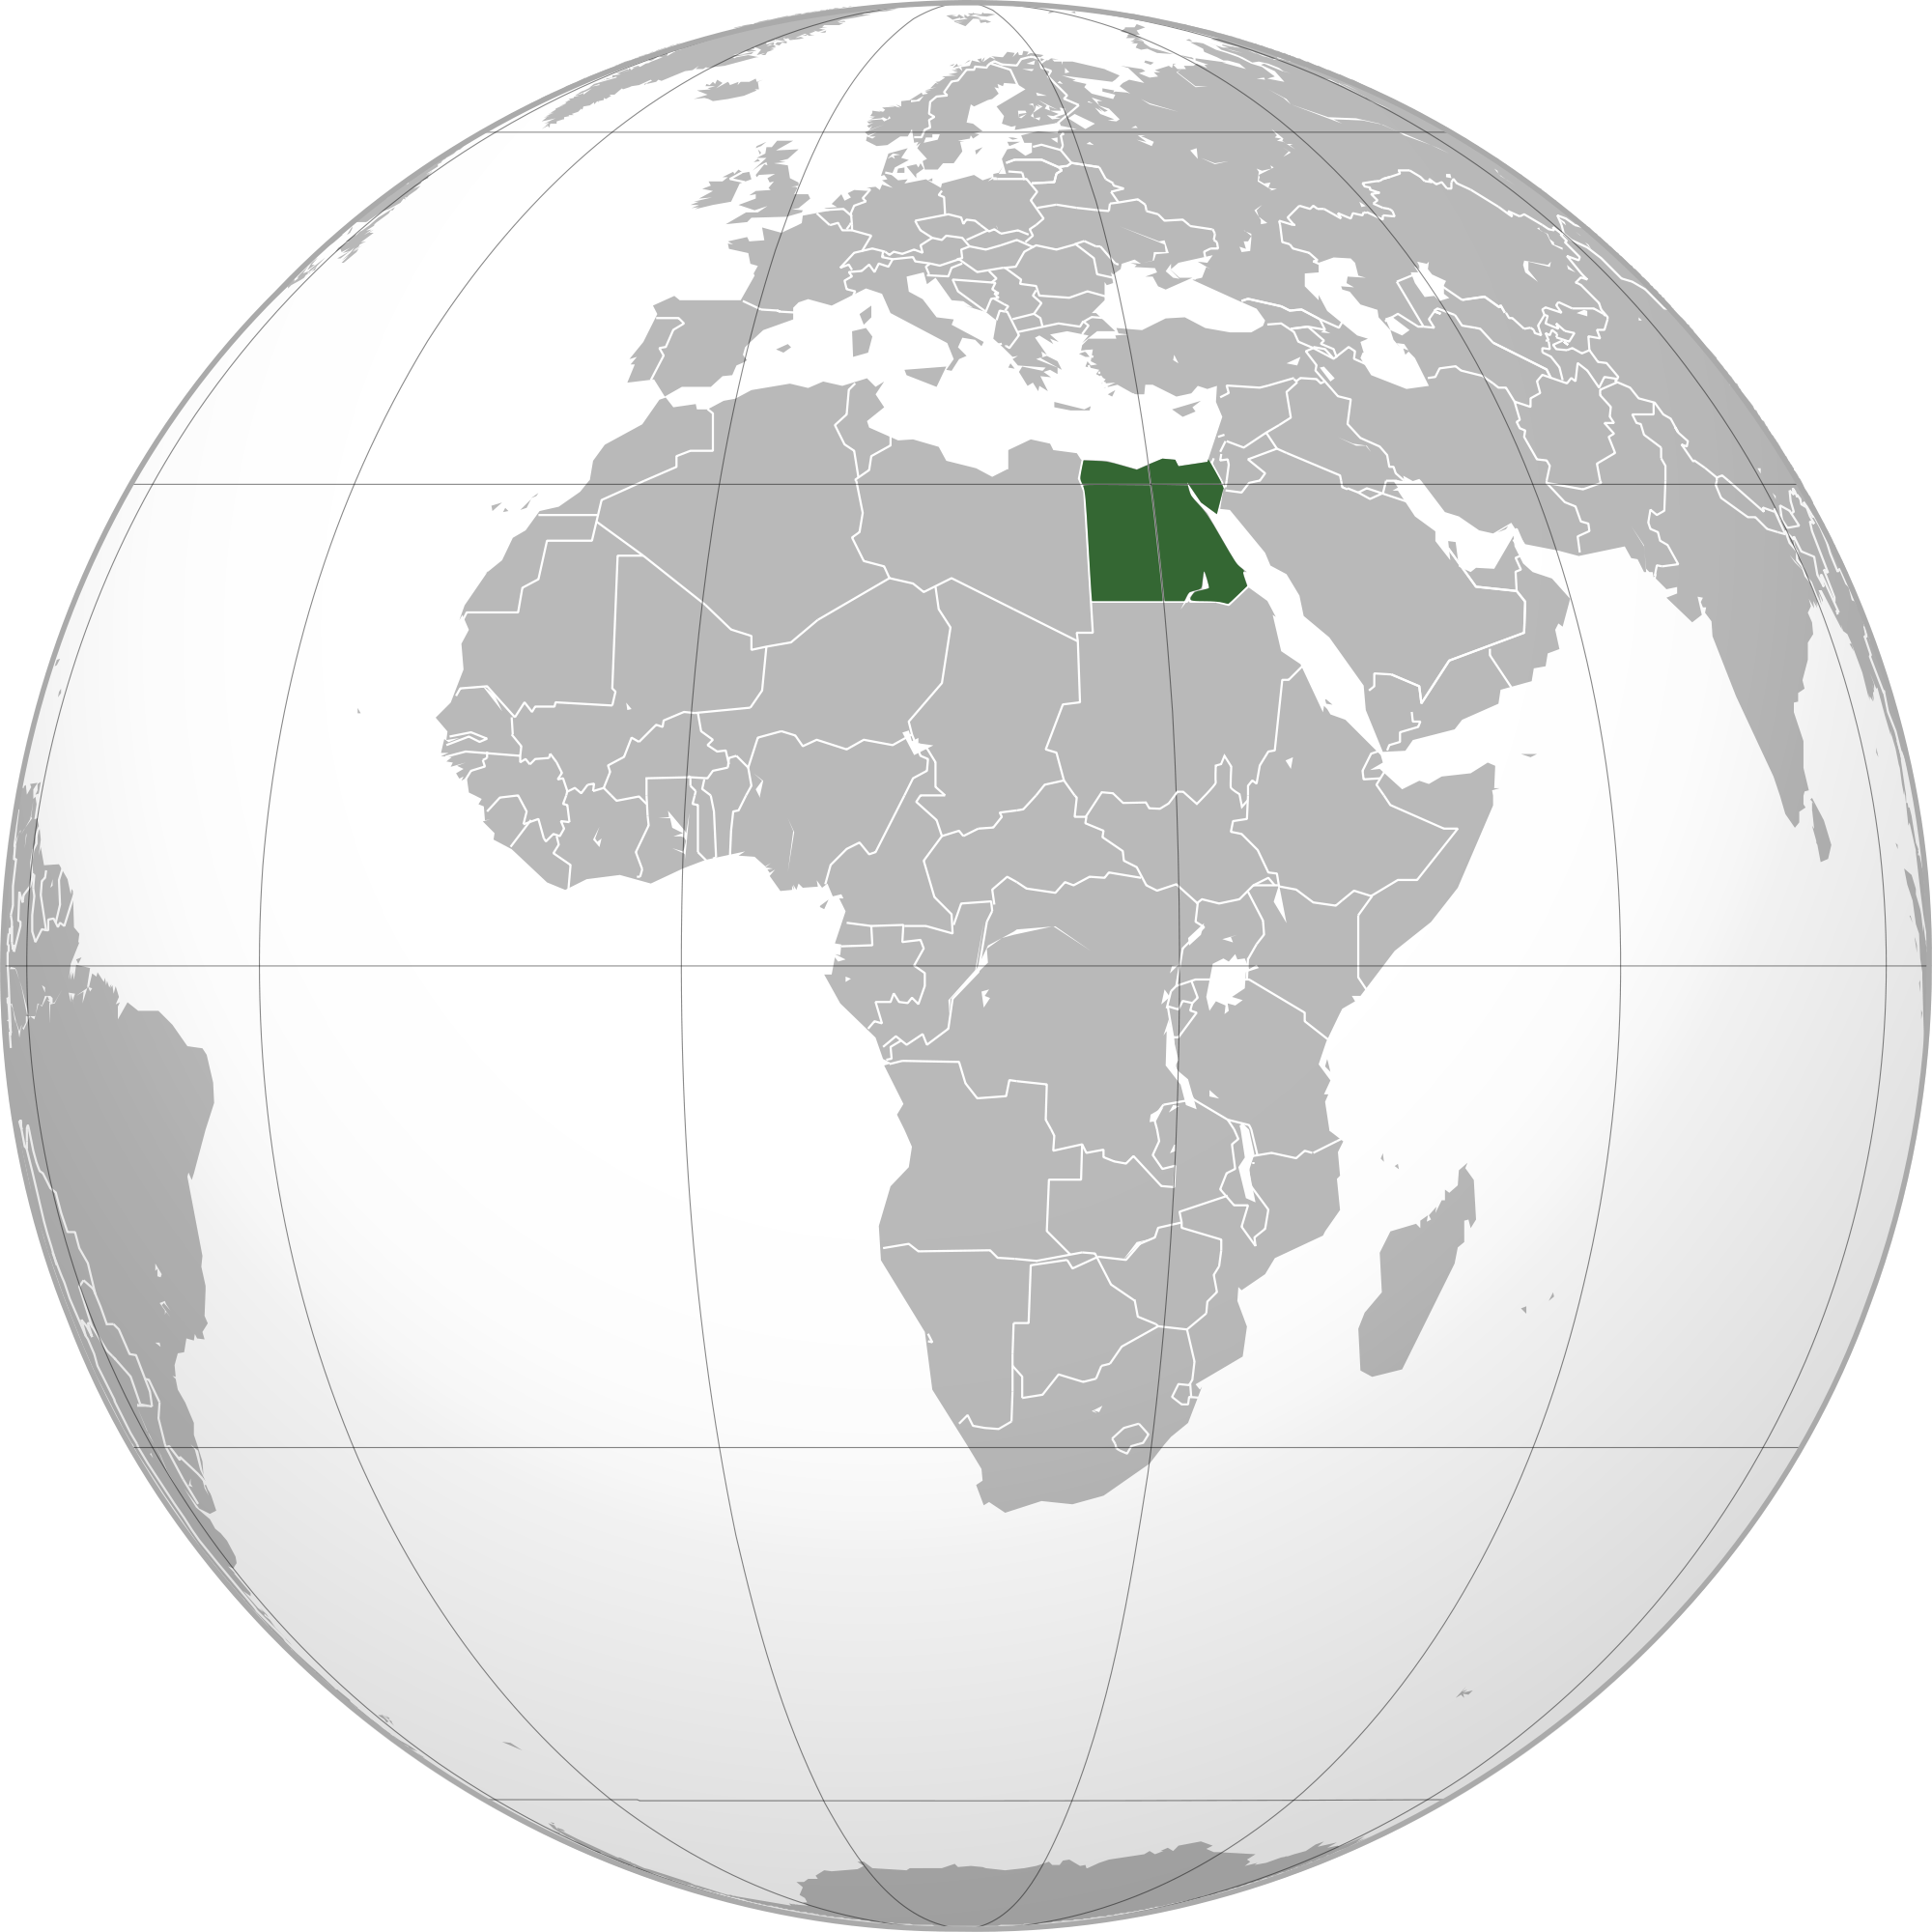 Location of the Egypt in the World Map